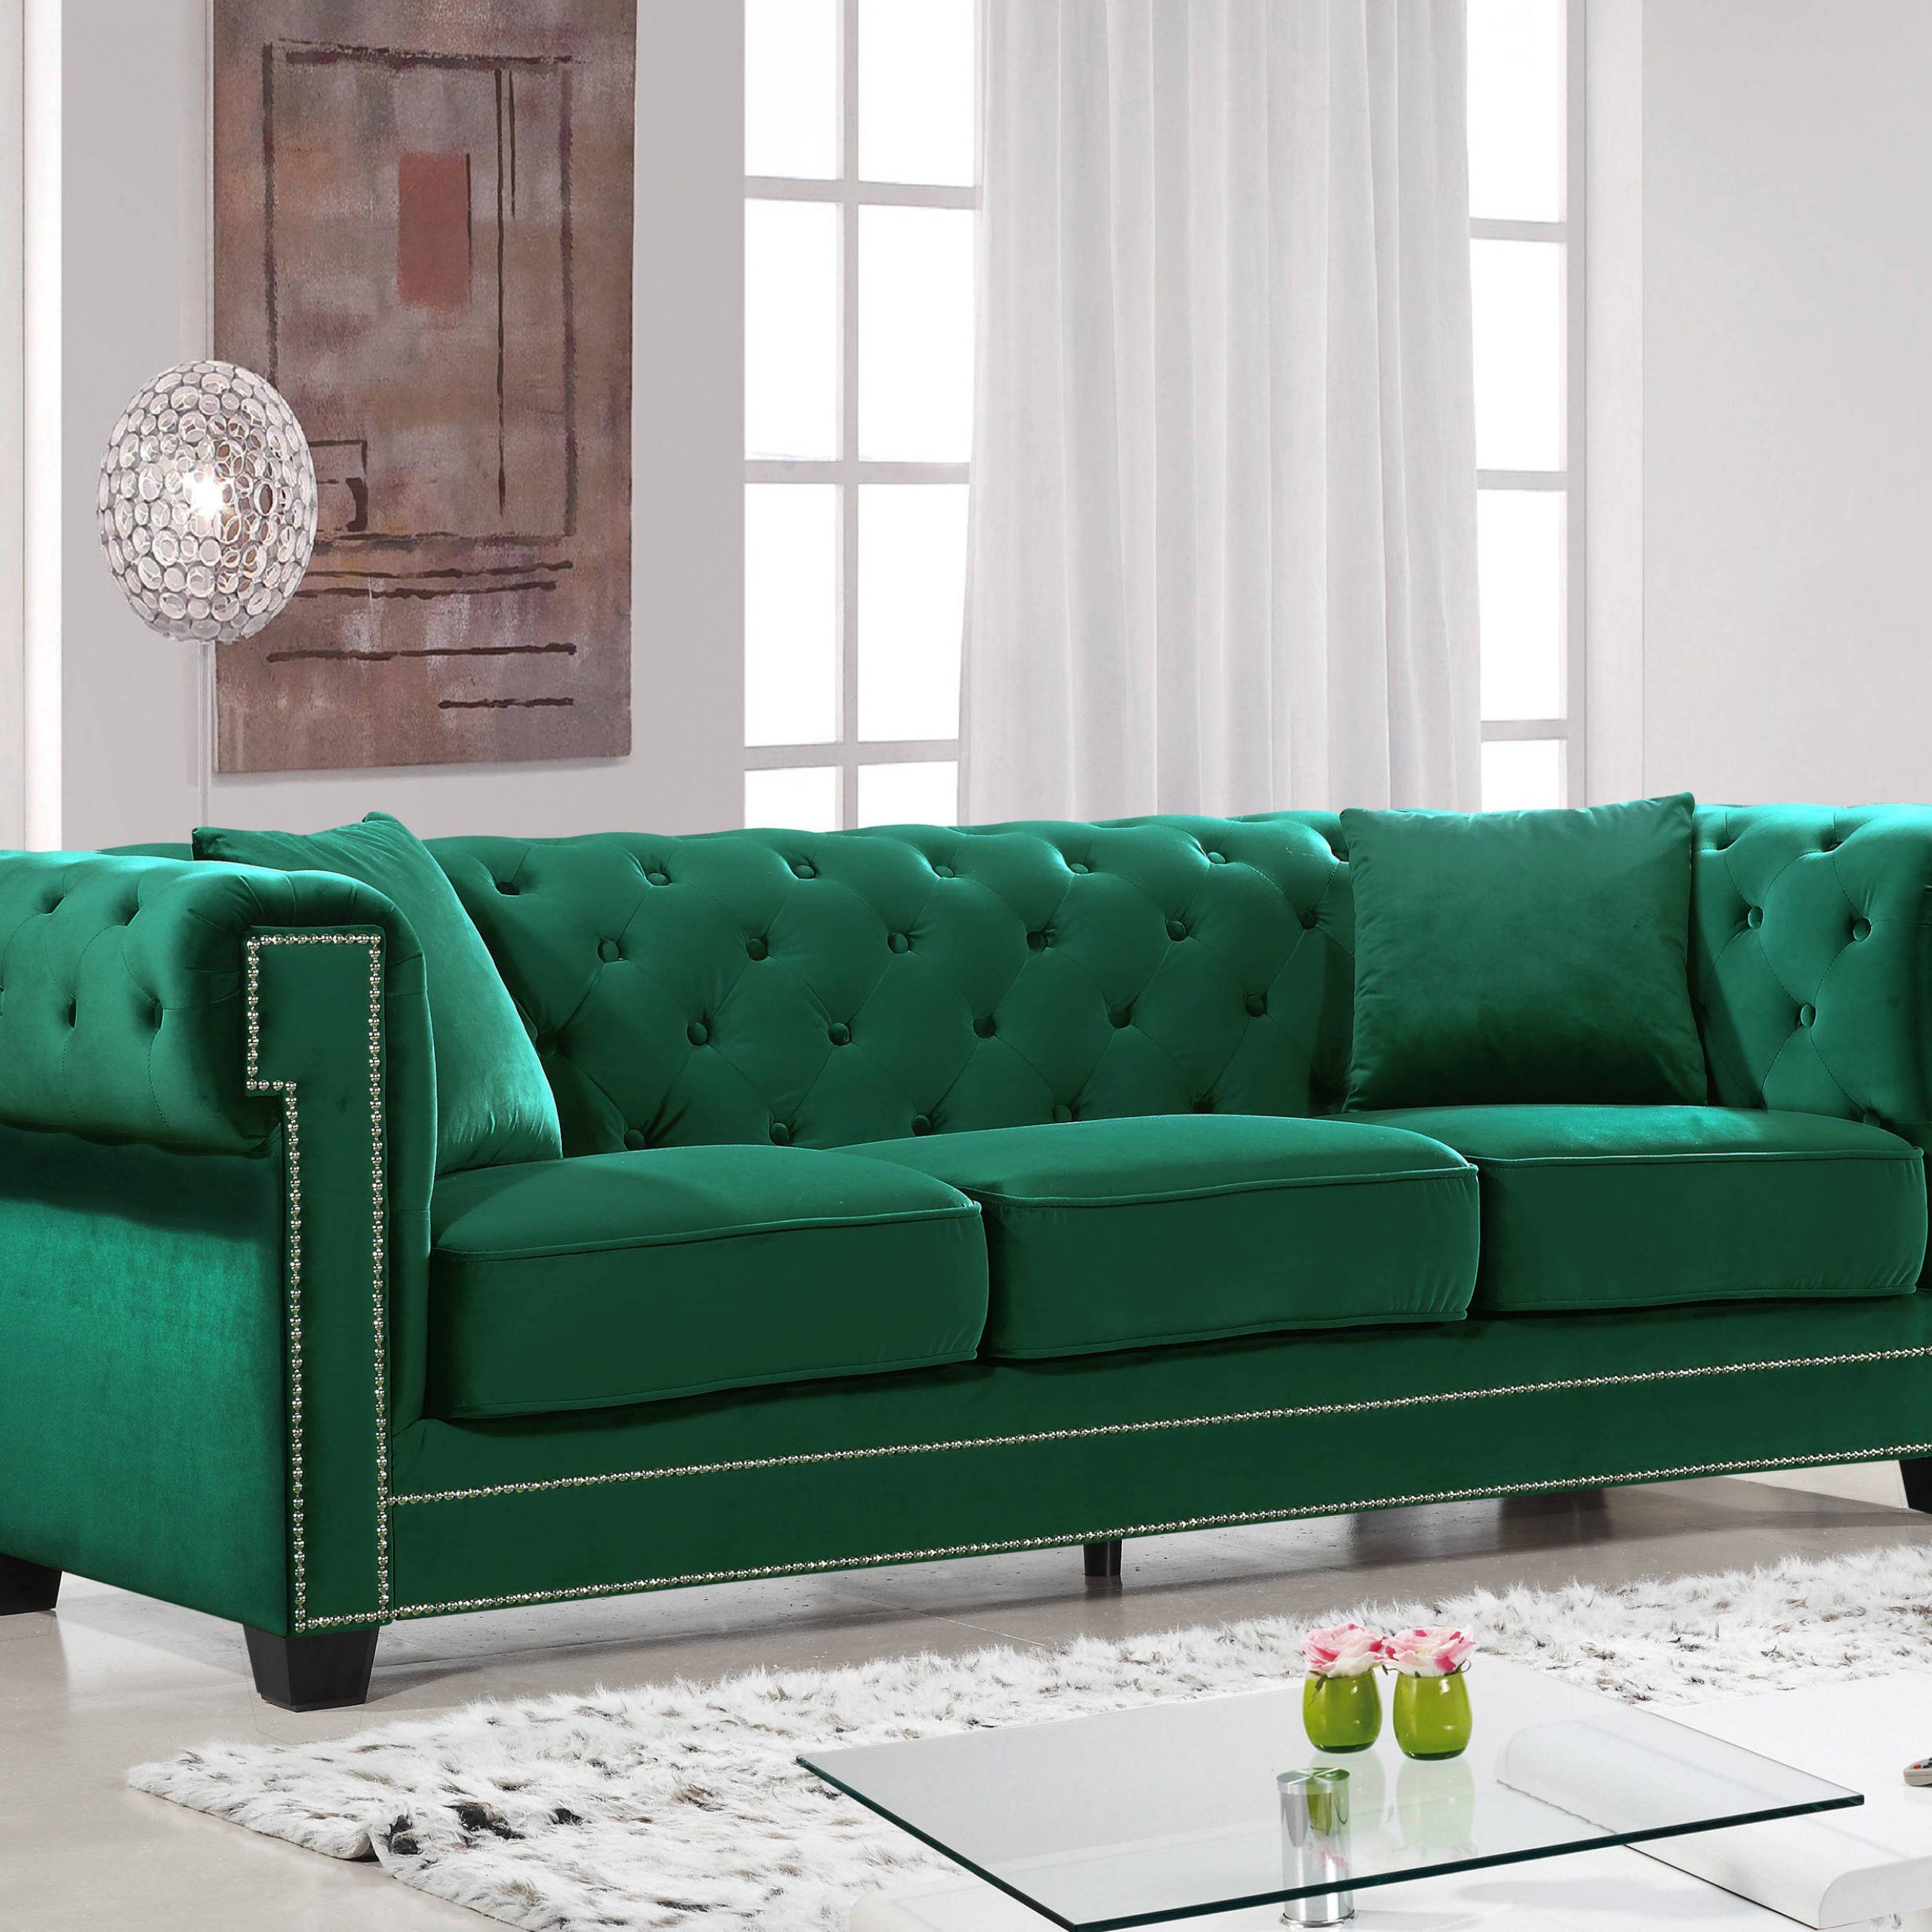 Meridian Furniture Bowery Green Sofa   The Classy Home Regarding Green Sectional Sofas (View 7 of 15)